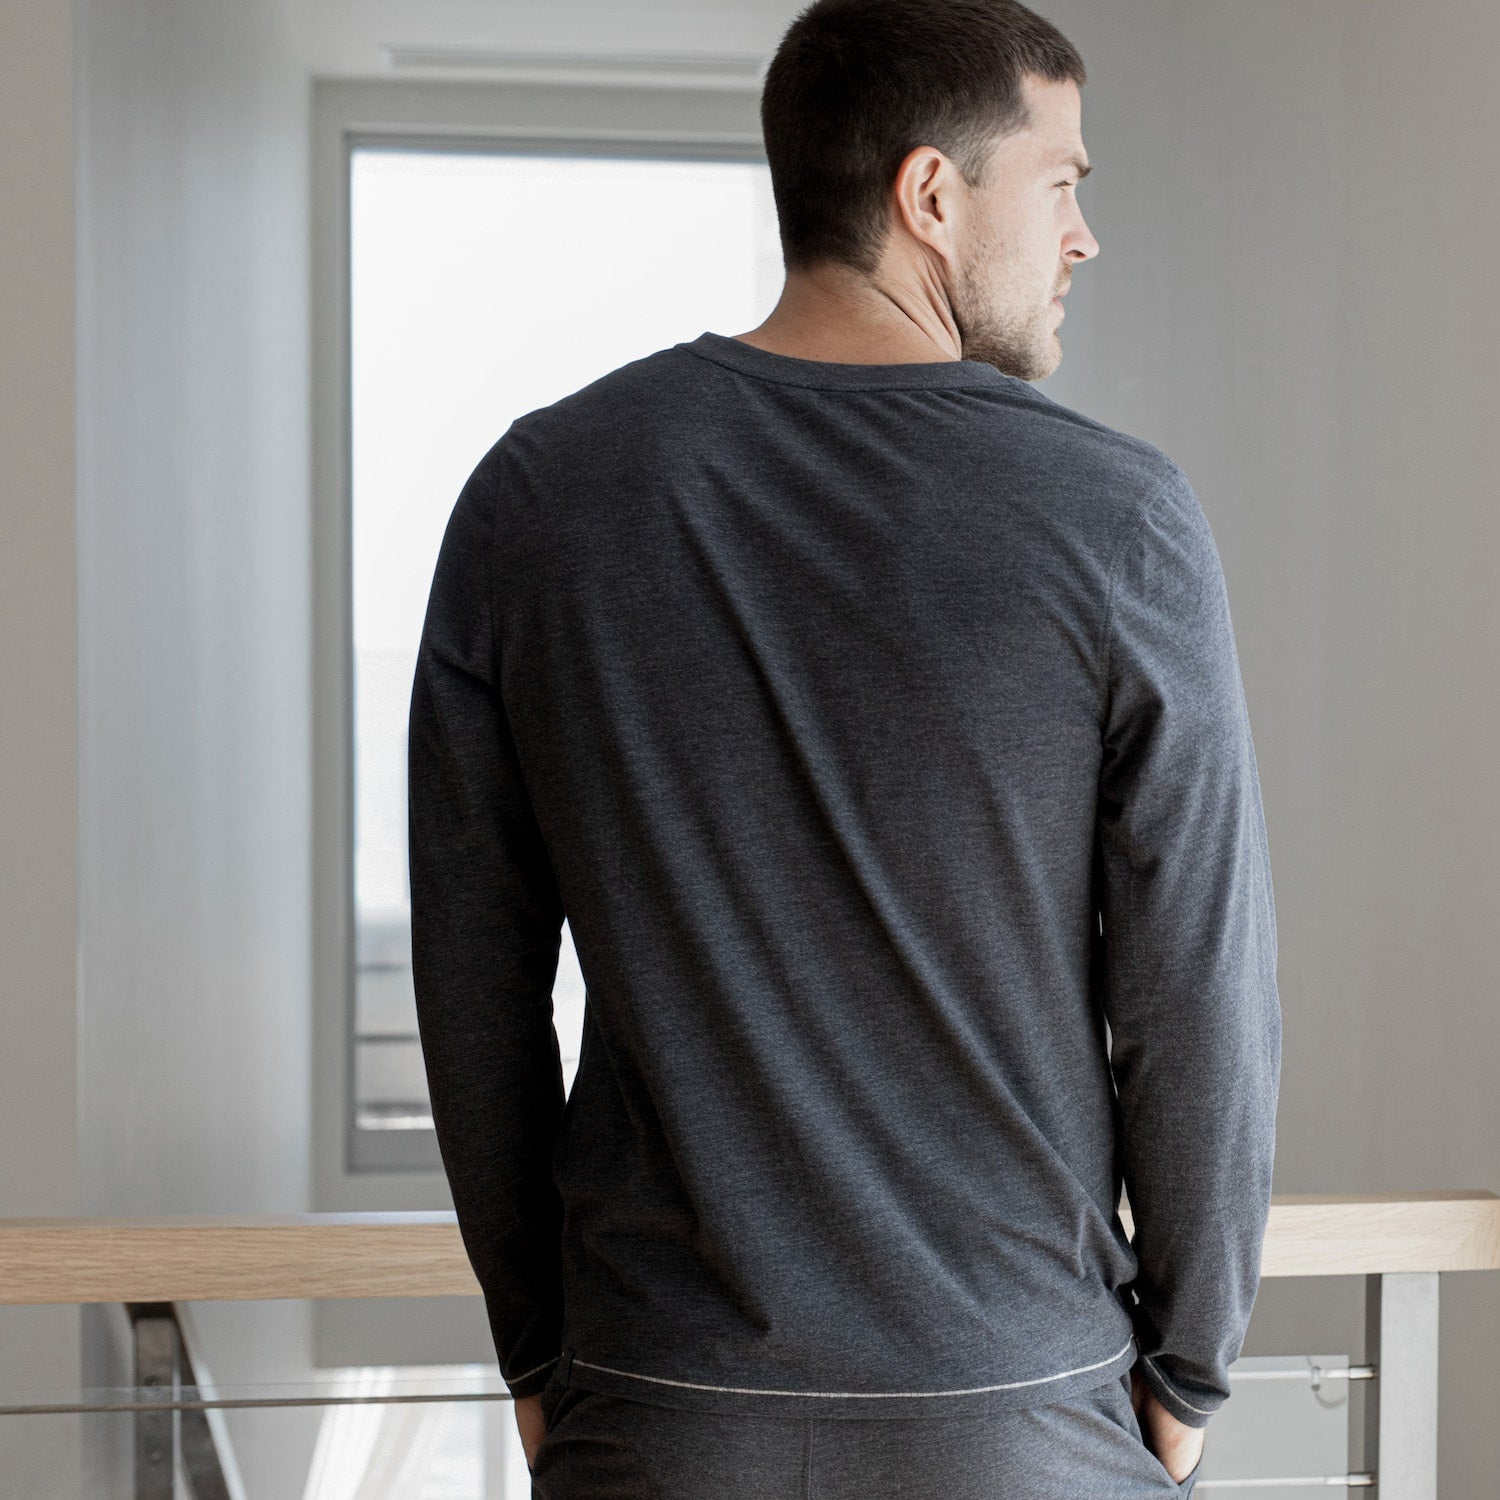 Lahgo Sleepwear Restore Long Sleeve Henley - #Charcoal